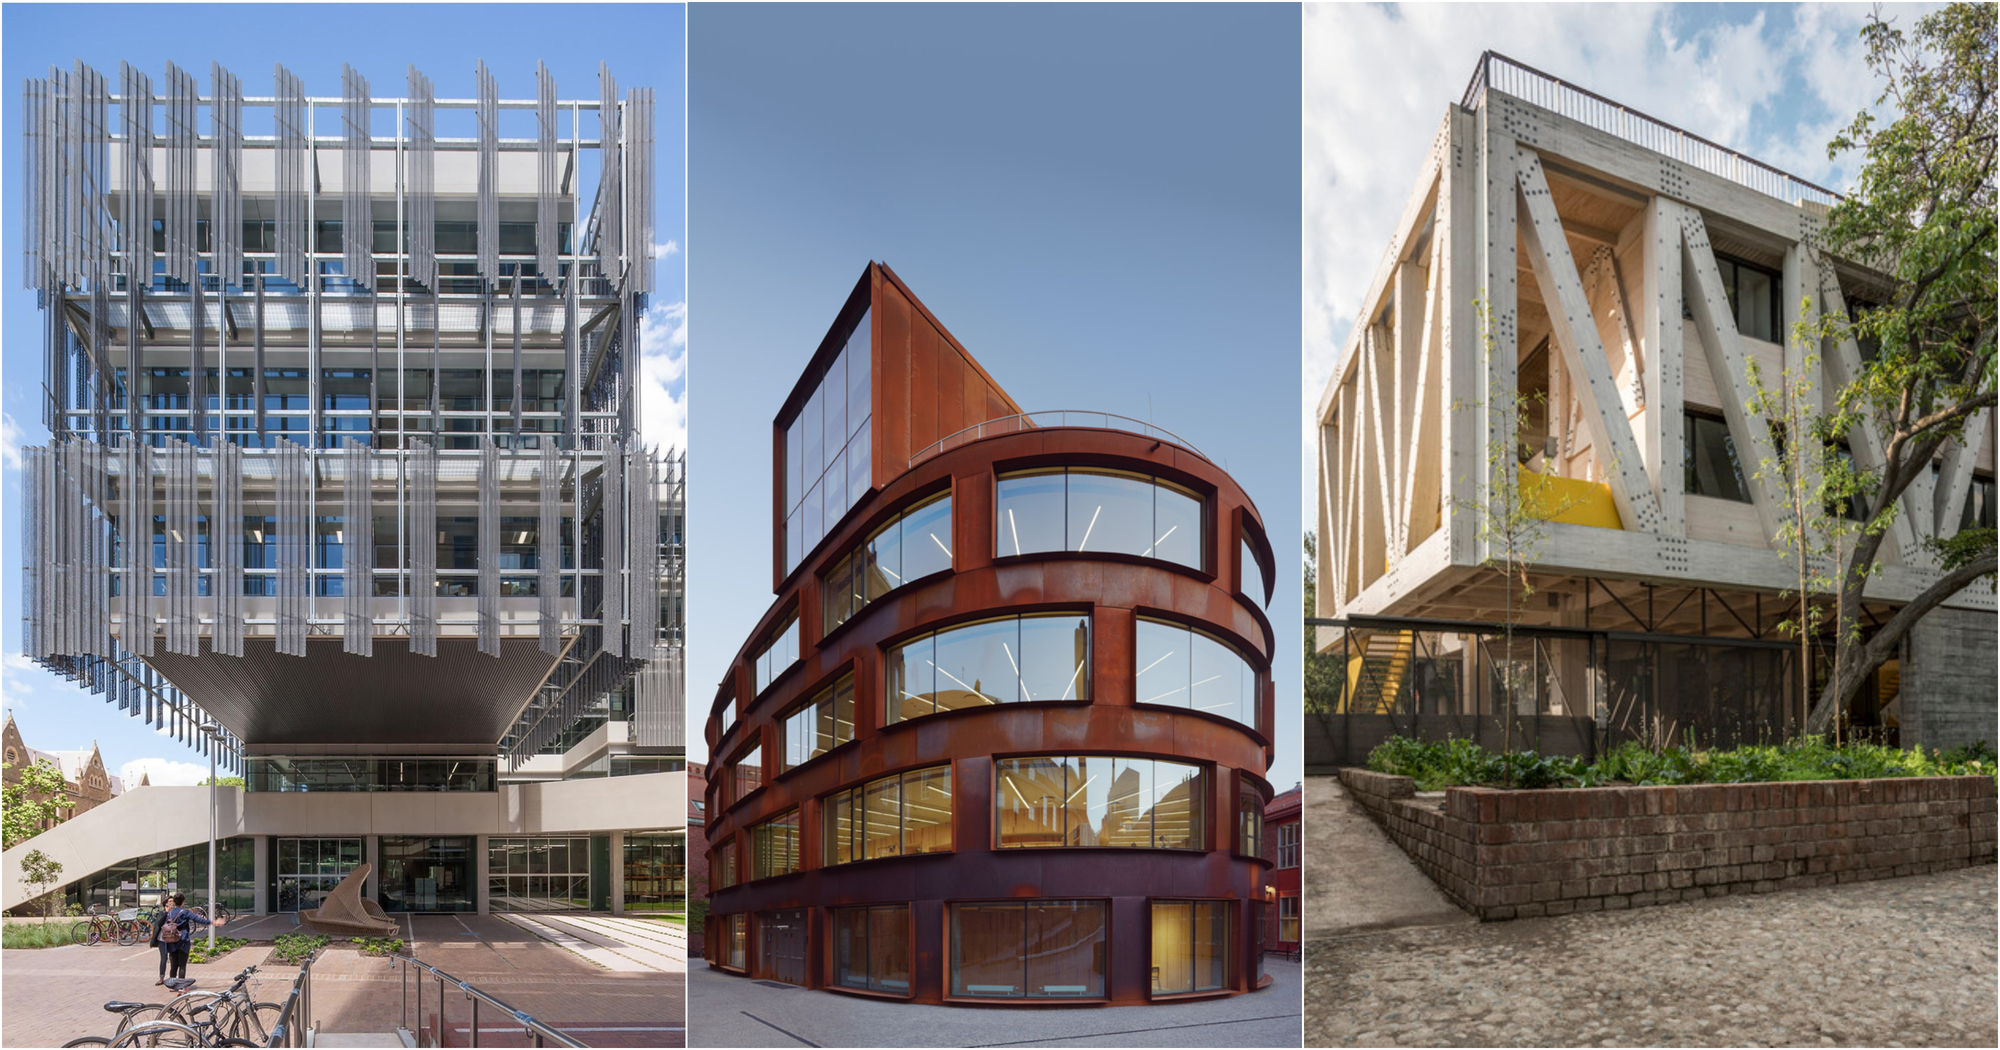 15 Inspiring Architecture School Buildings From Around The